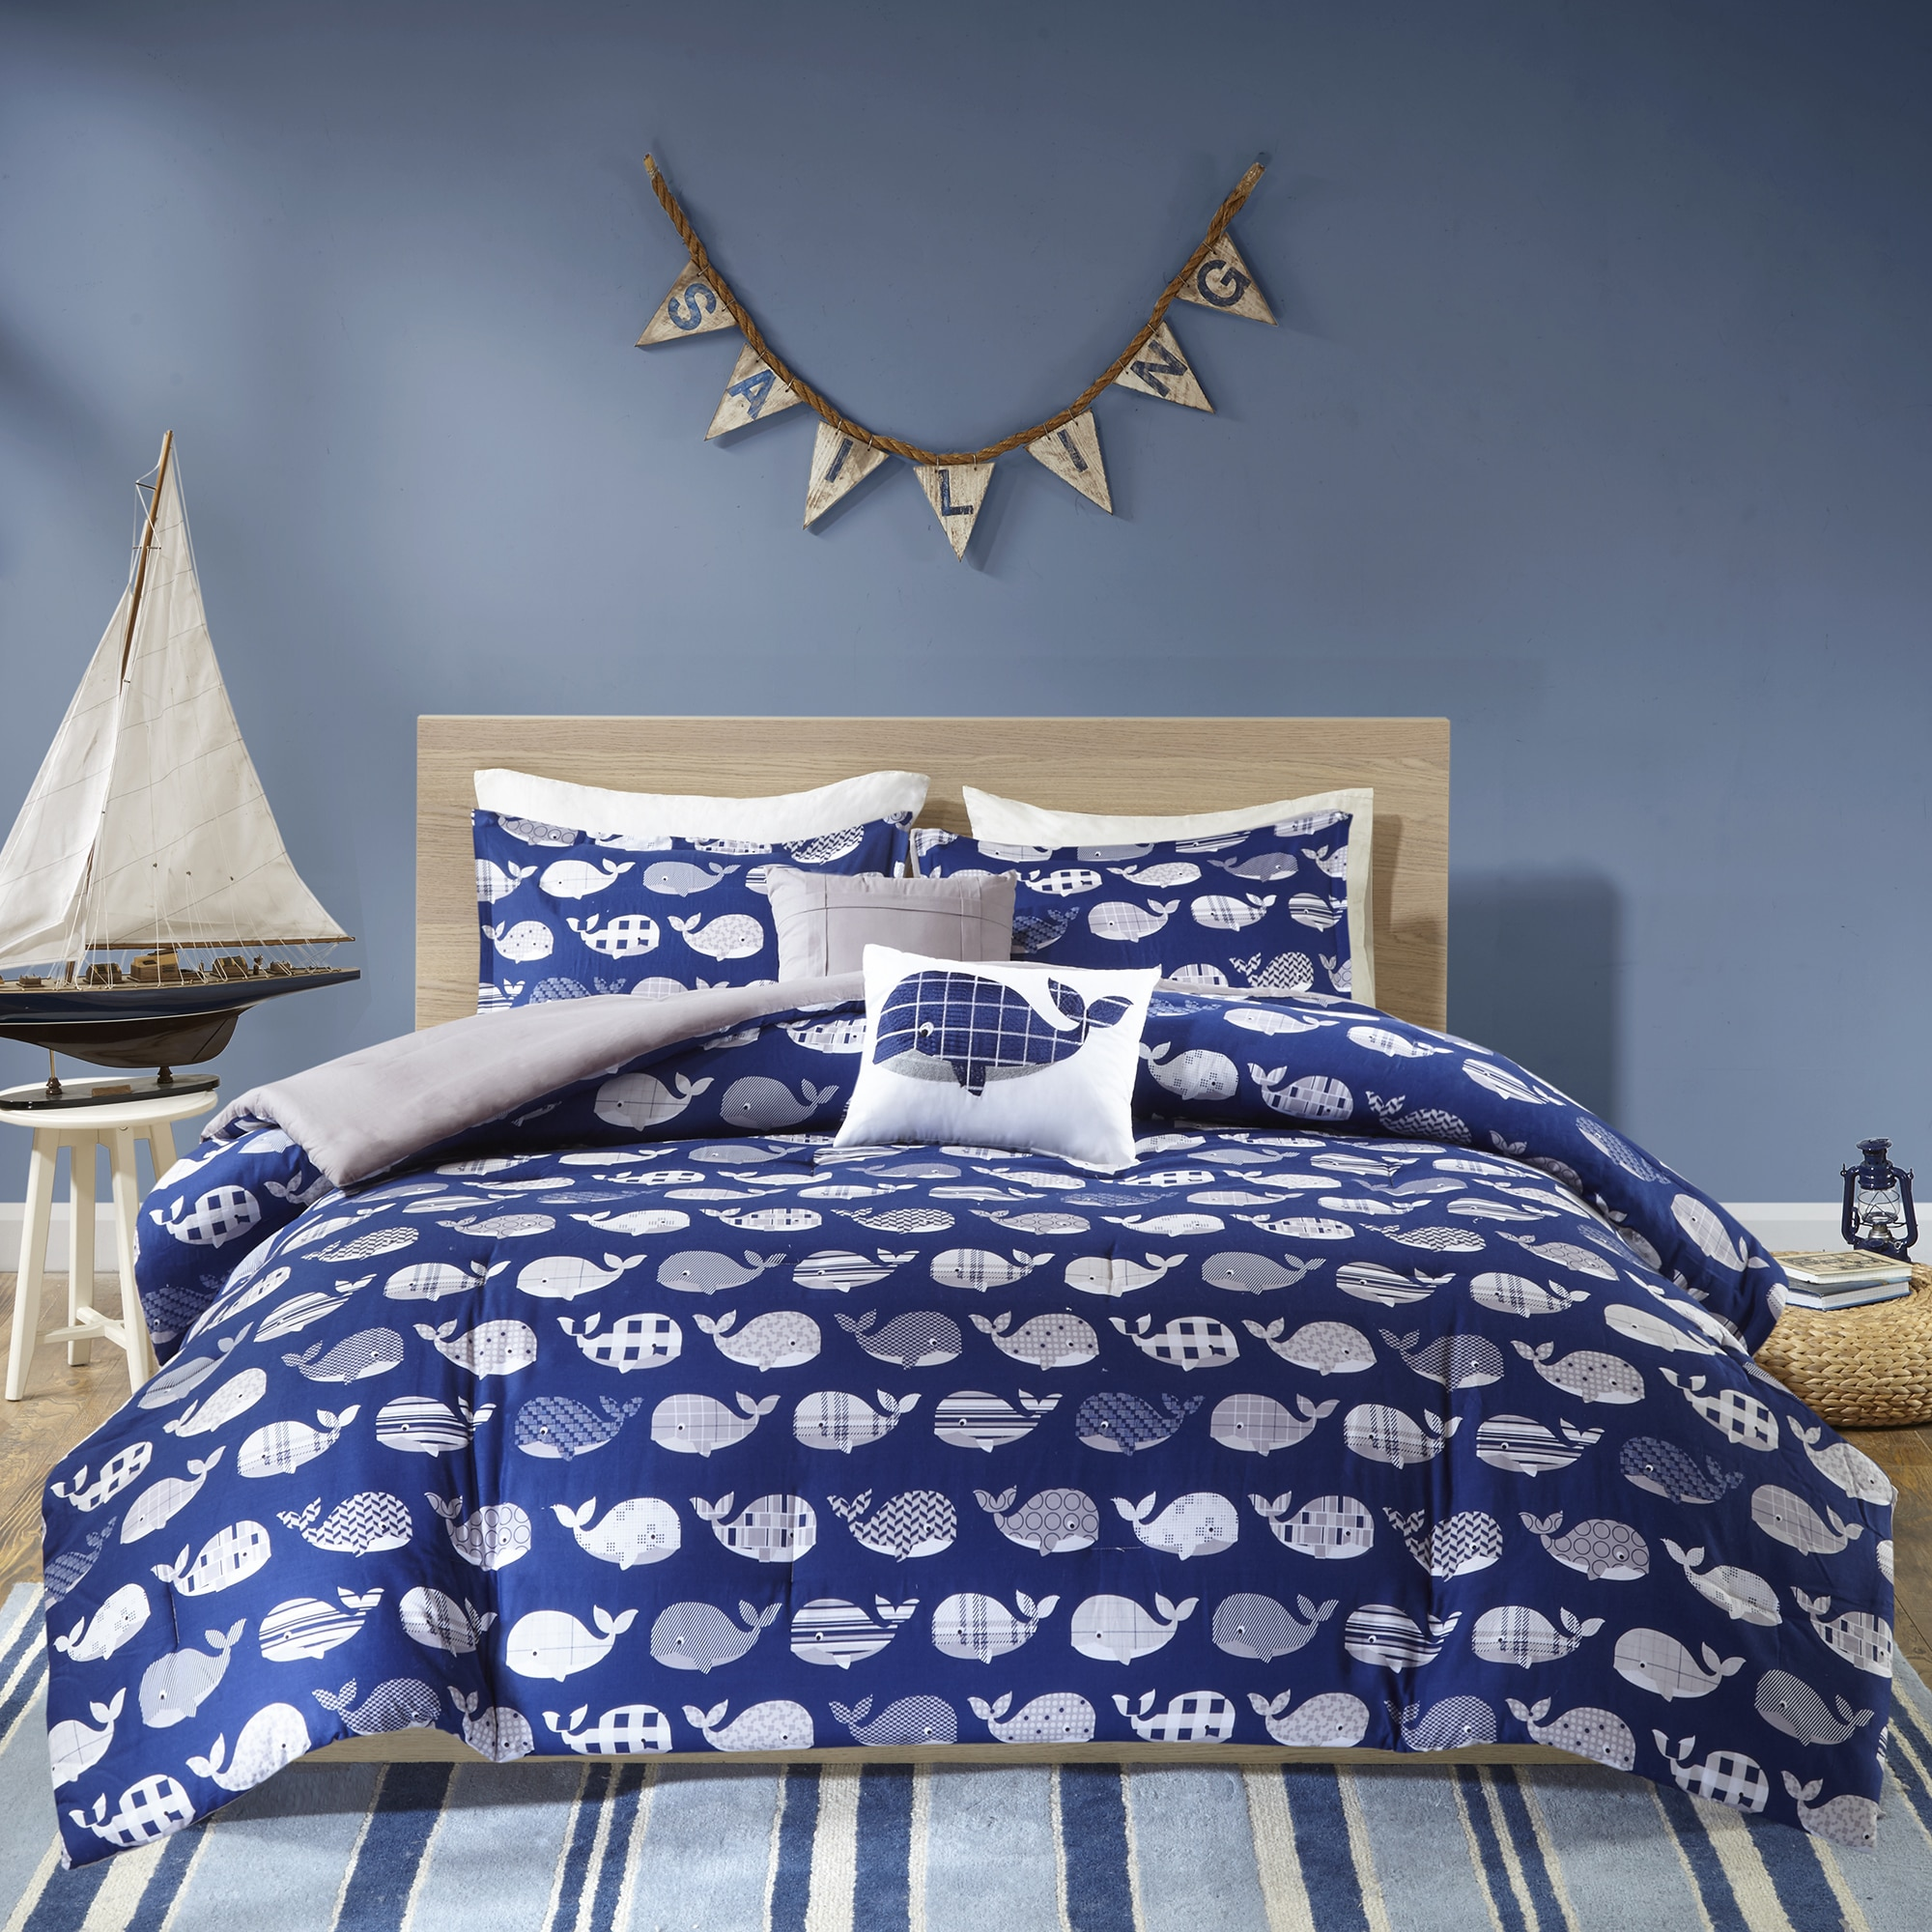 Home Essence Kids Theo Whale Printed Cotton Comforter Bedding Set